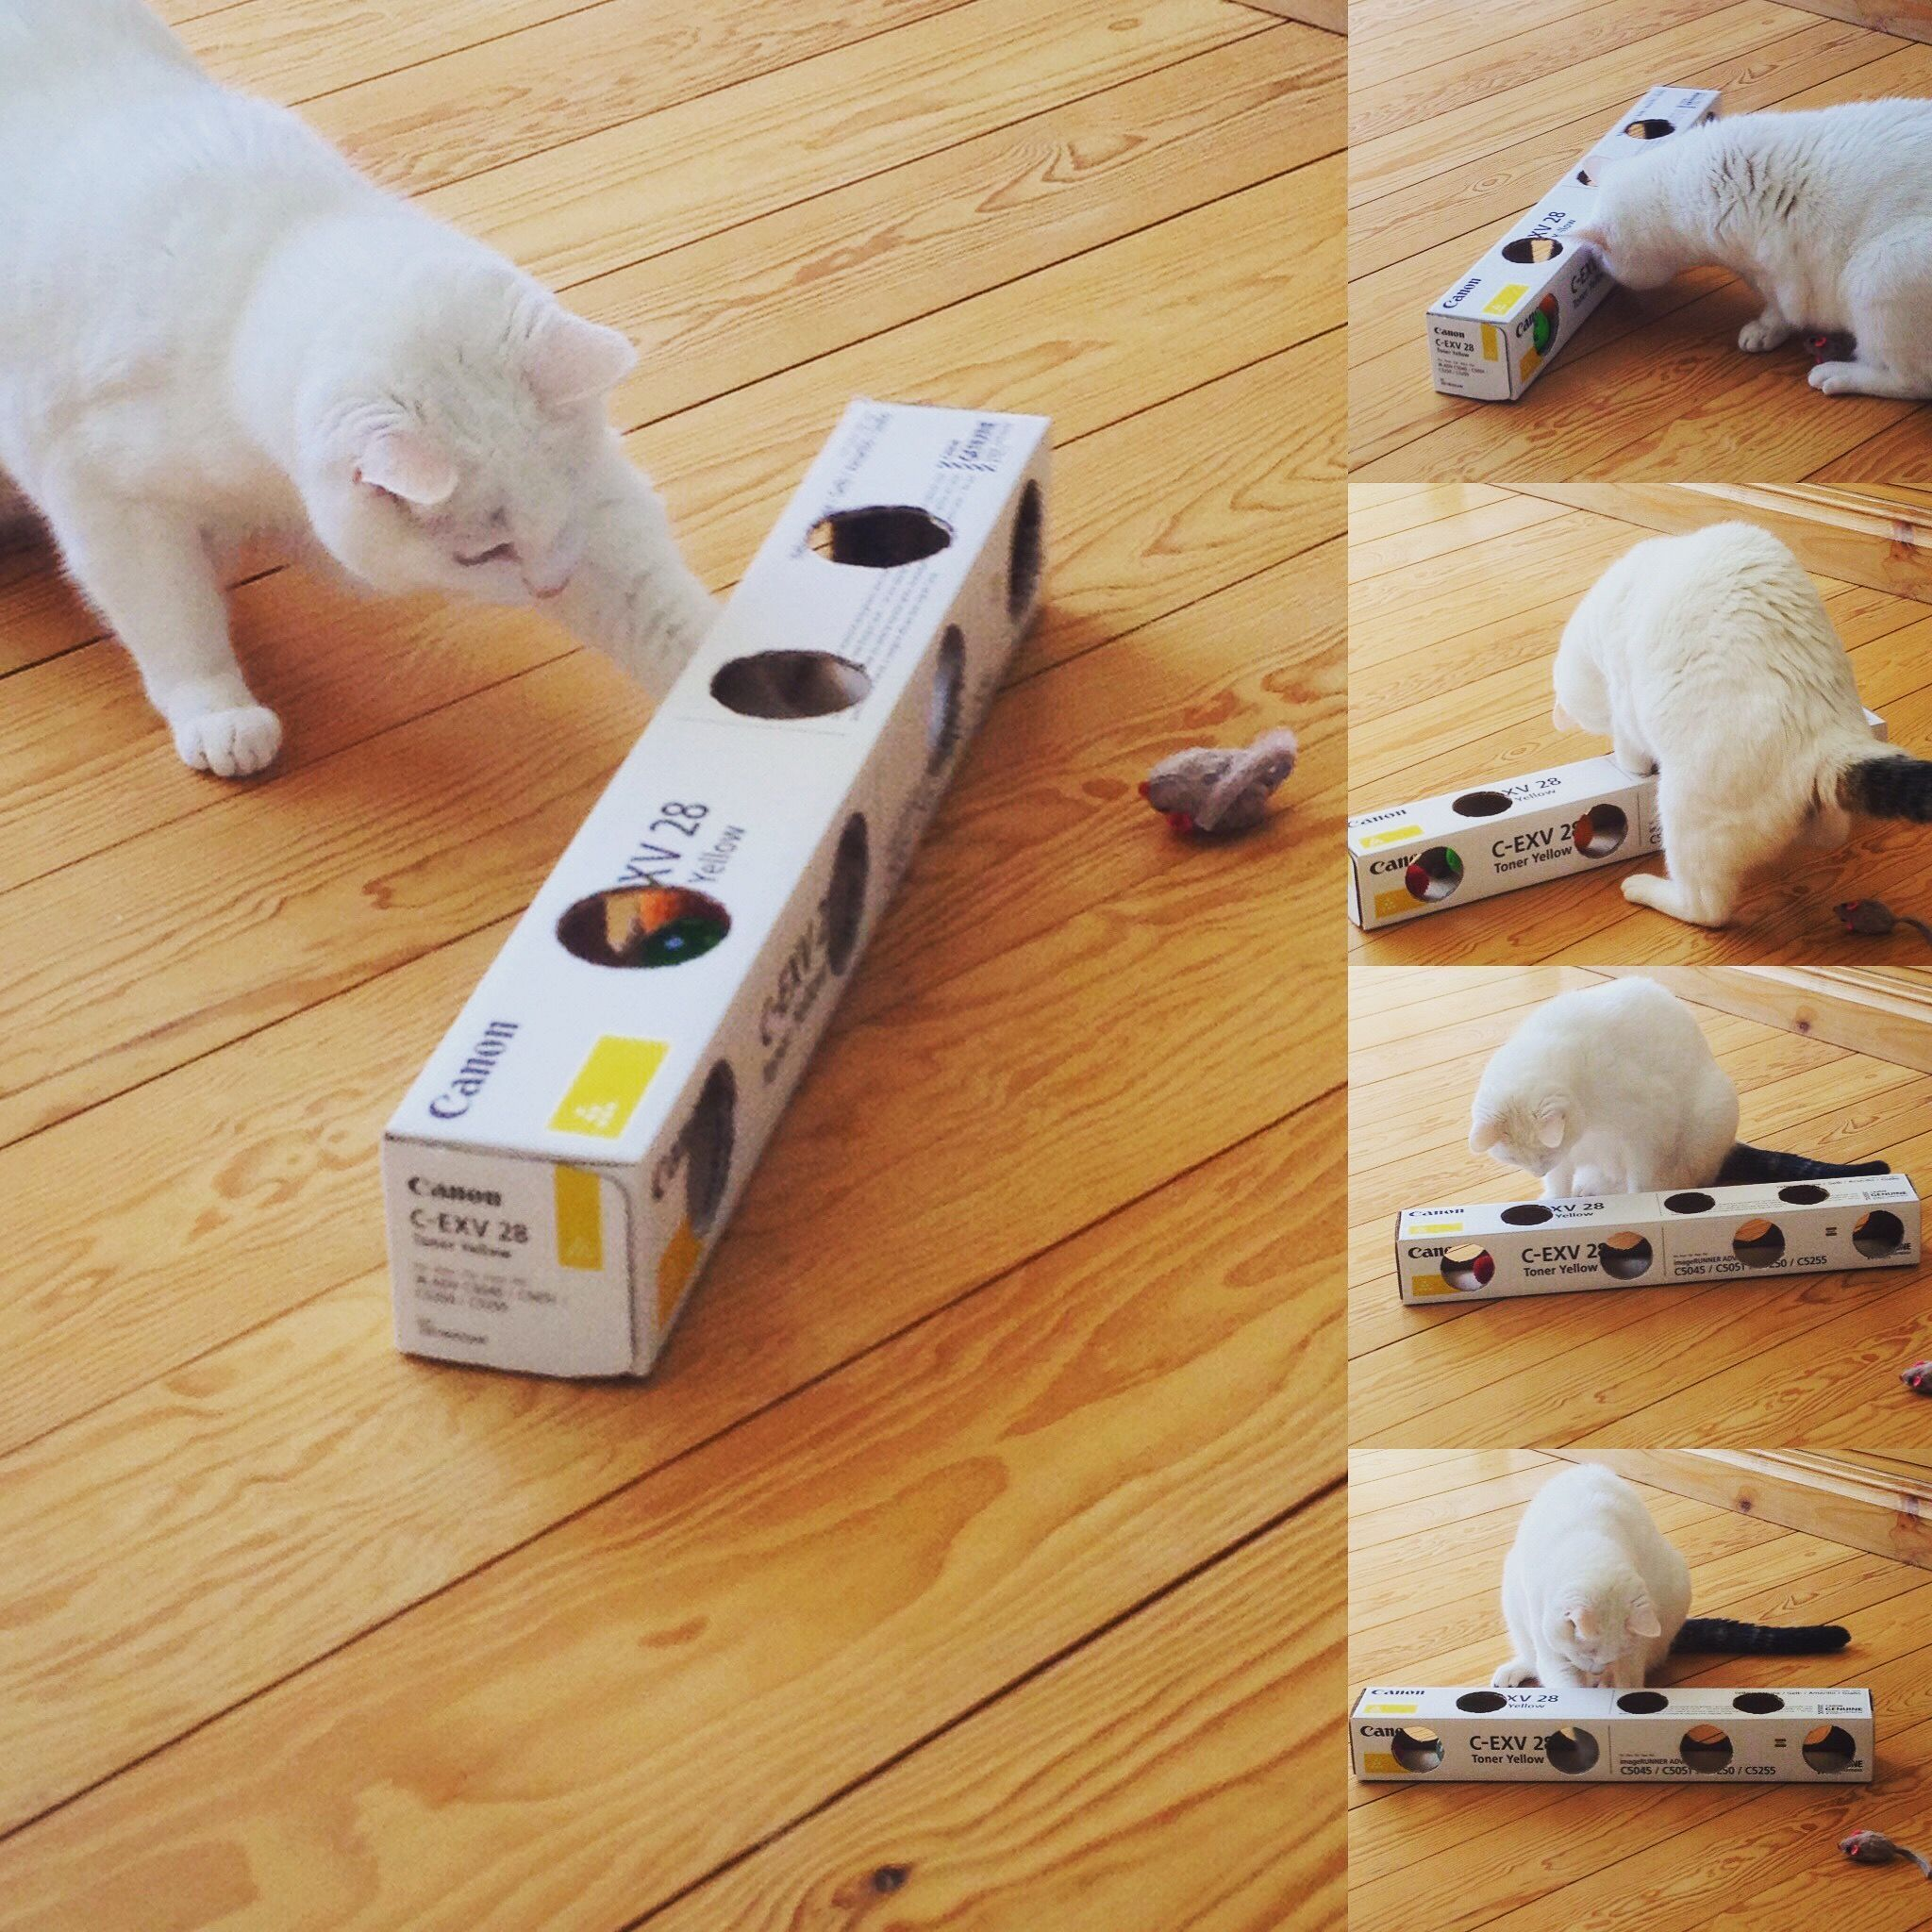 Cat Toy An Empty Box A Few Holes A Mouse 2 3 Balls And Snacks Let The Fun Begin Cat Game Diy Http Www Kitt Diy Cat Toys Cat Puzzle Homemade Cat Toys